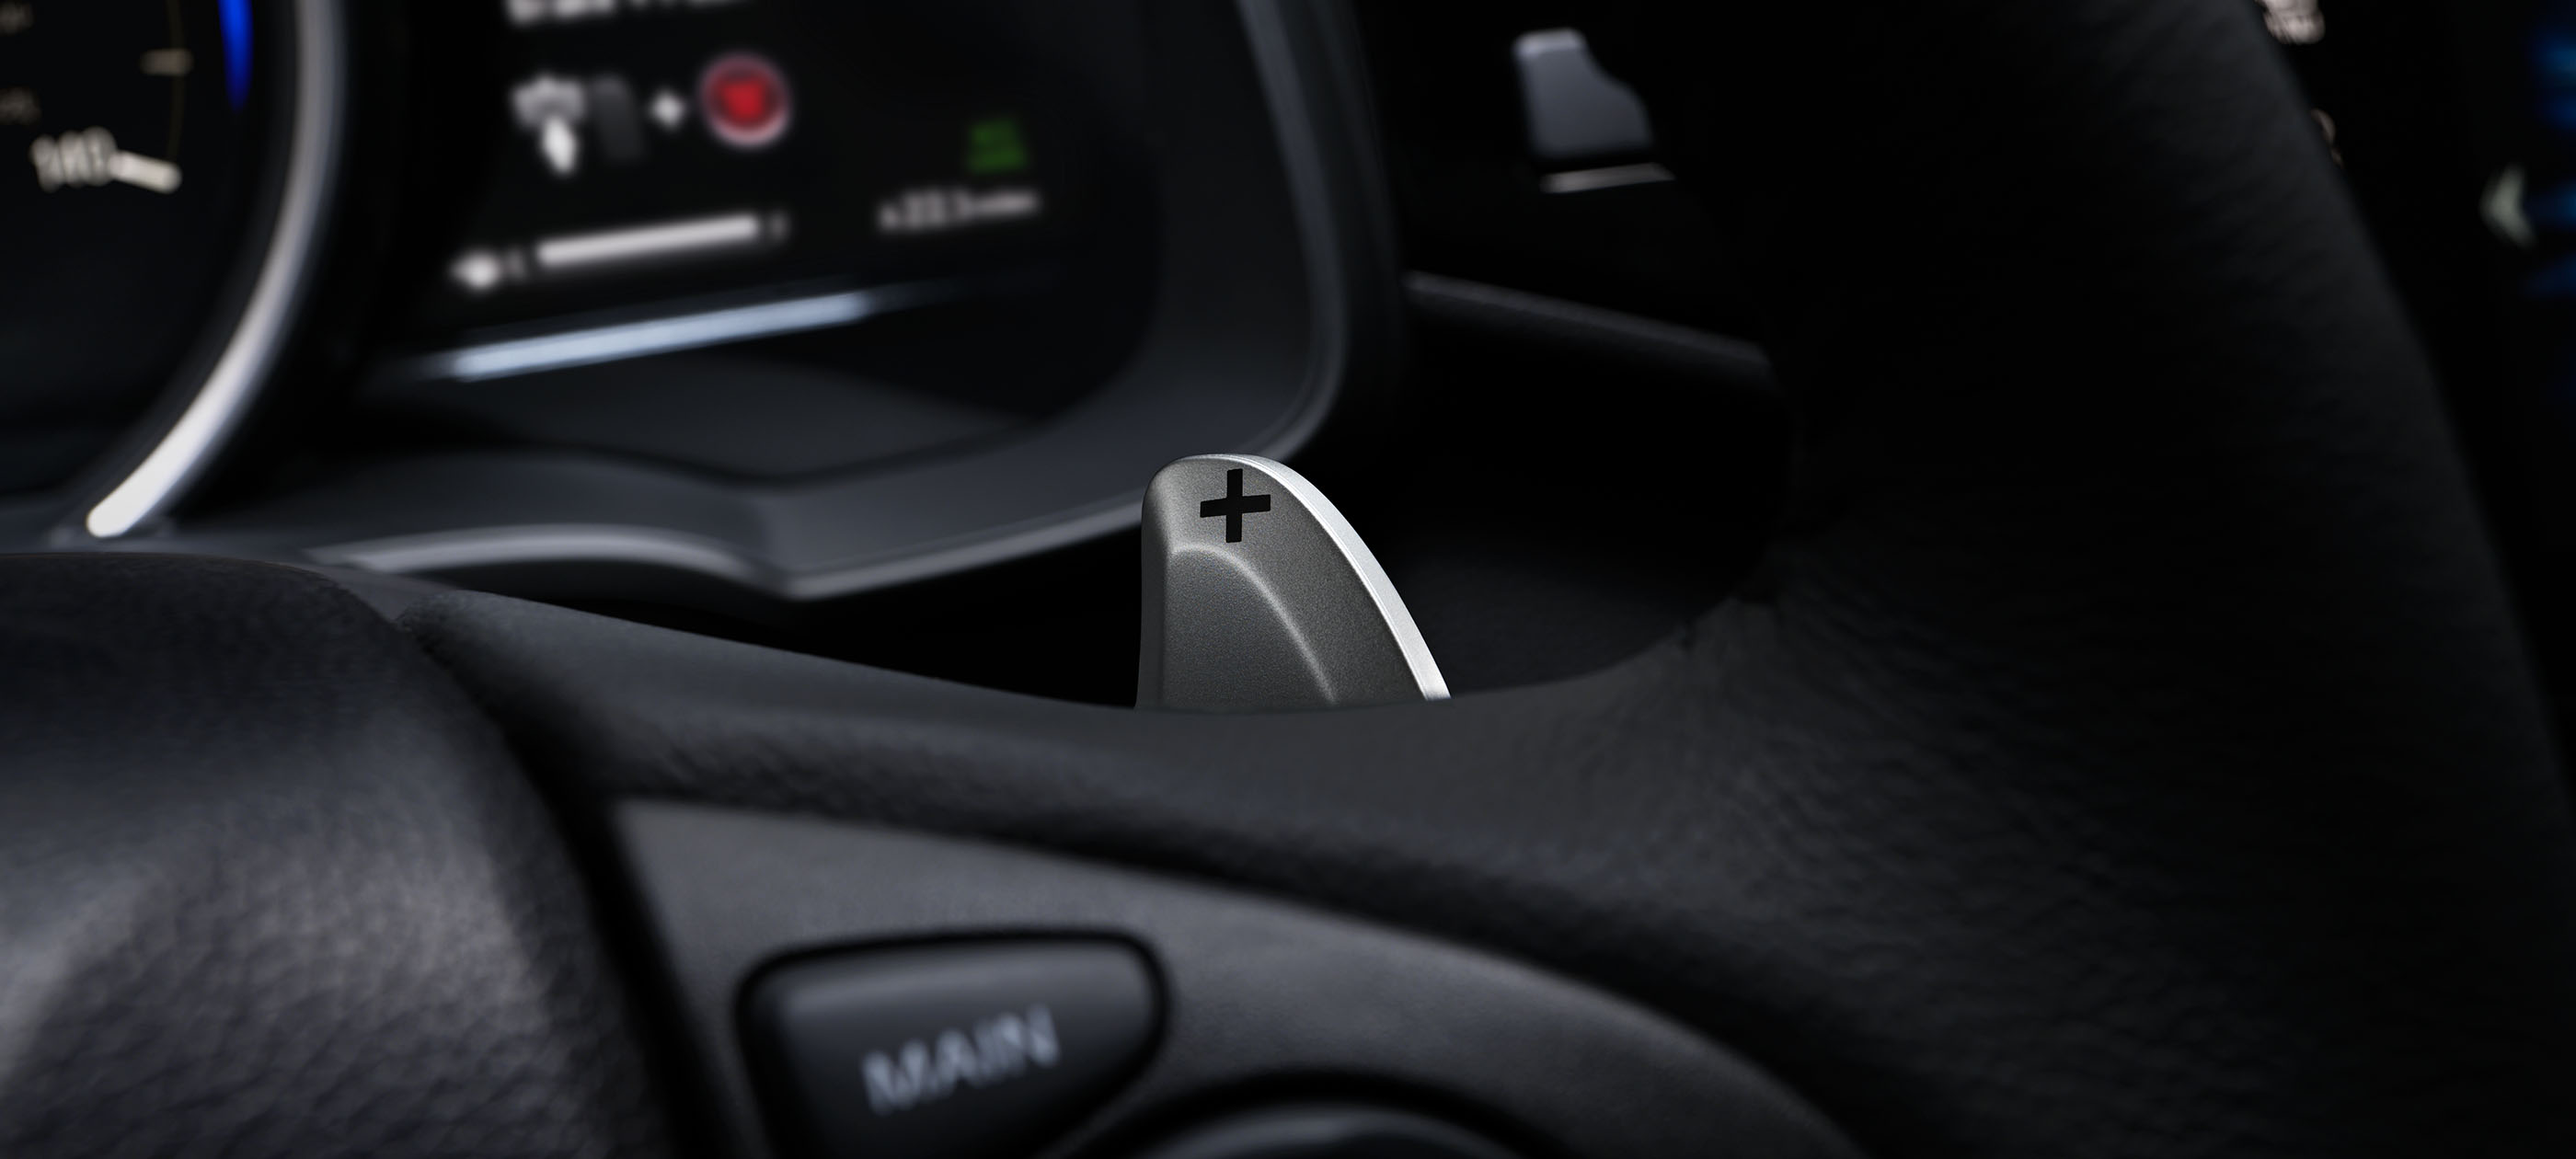 Sport mode with paddle shifters detail on 2019 Honda Fit EX-L with black interior.